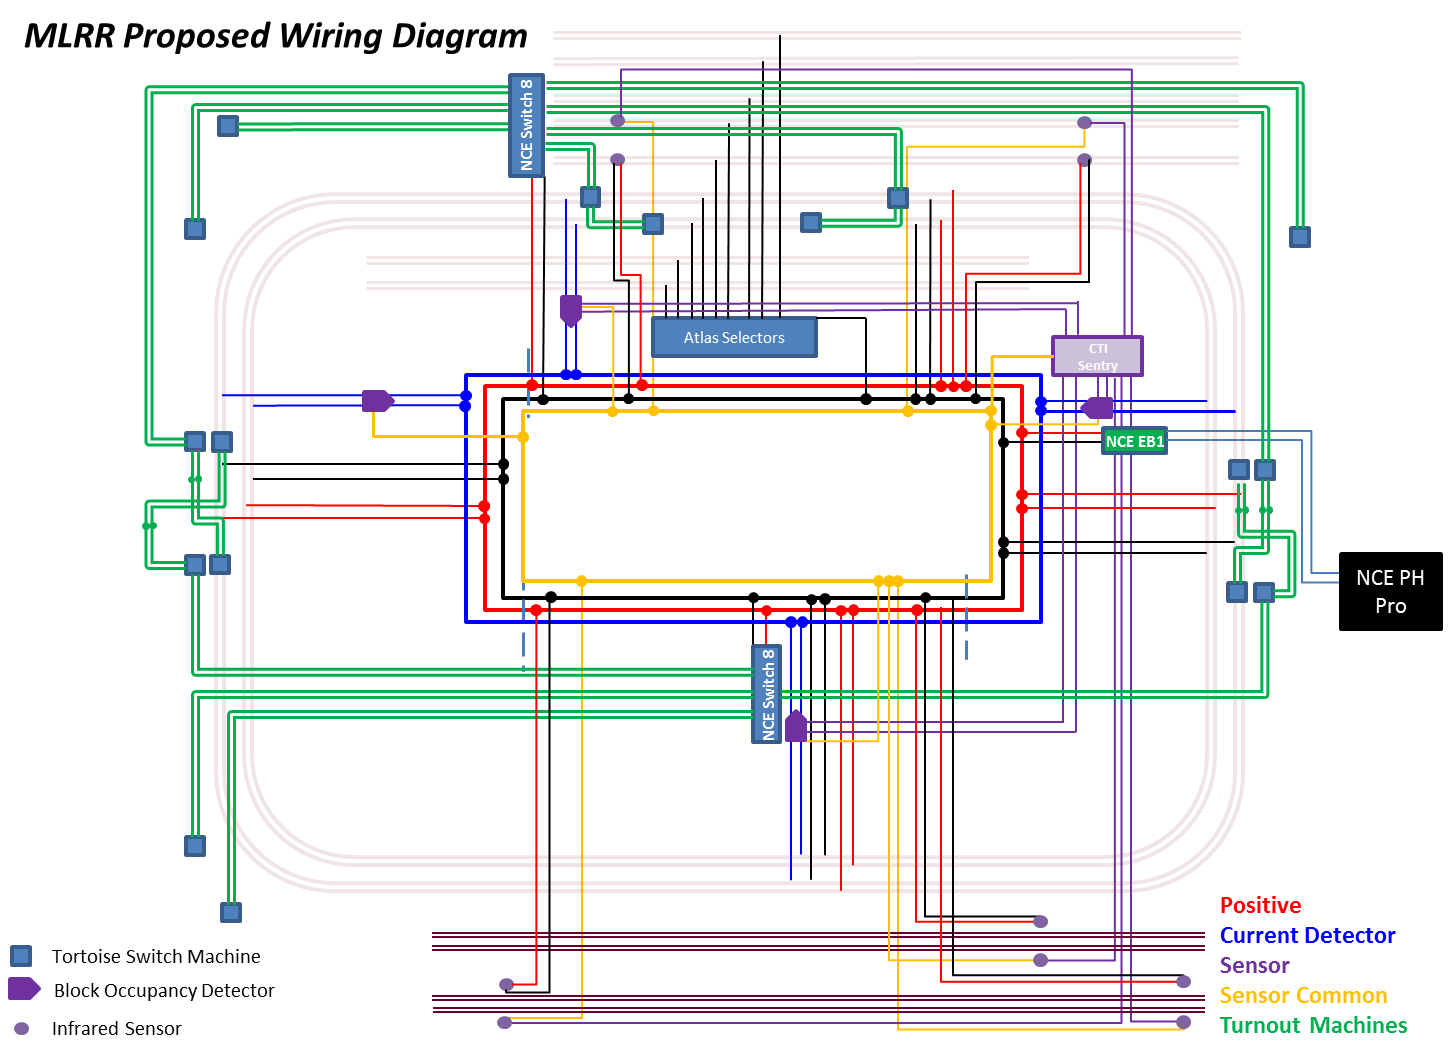 Nce Wiring Diagram Library Digitrax Booster The Proposed Mlrr Schematic Displays A Complex Network Of Wires And Connections Not Shown